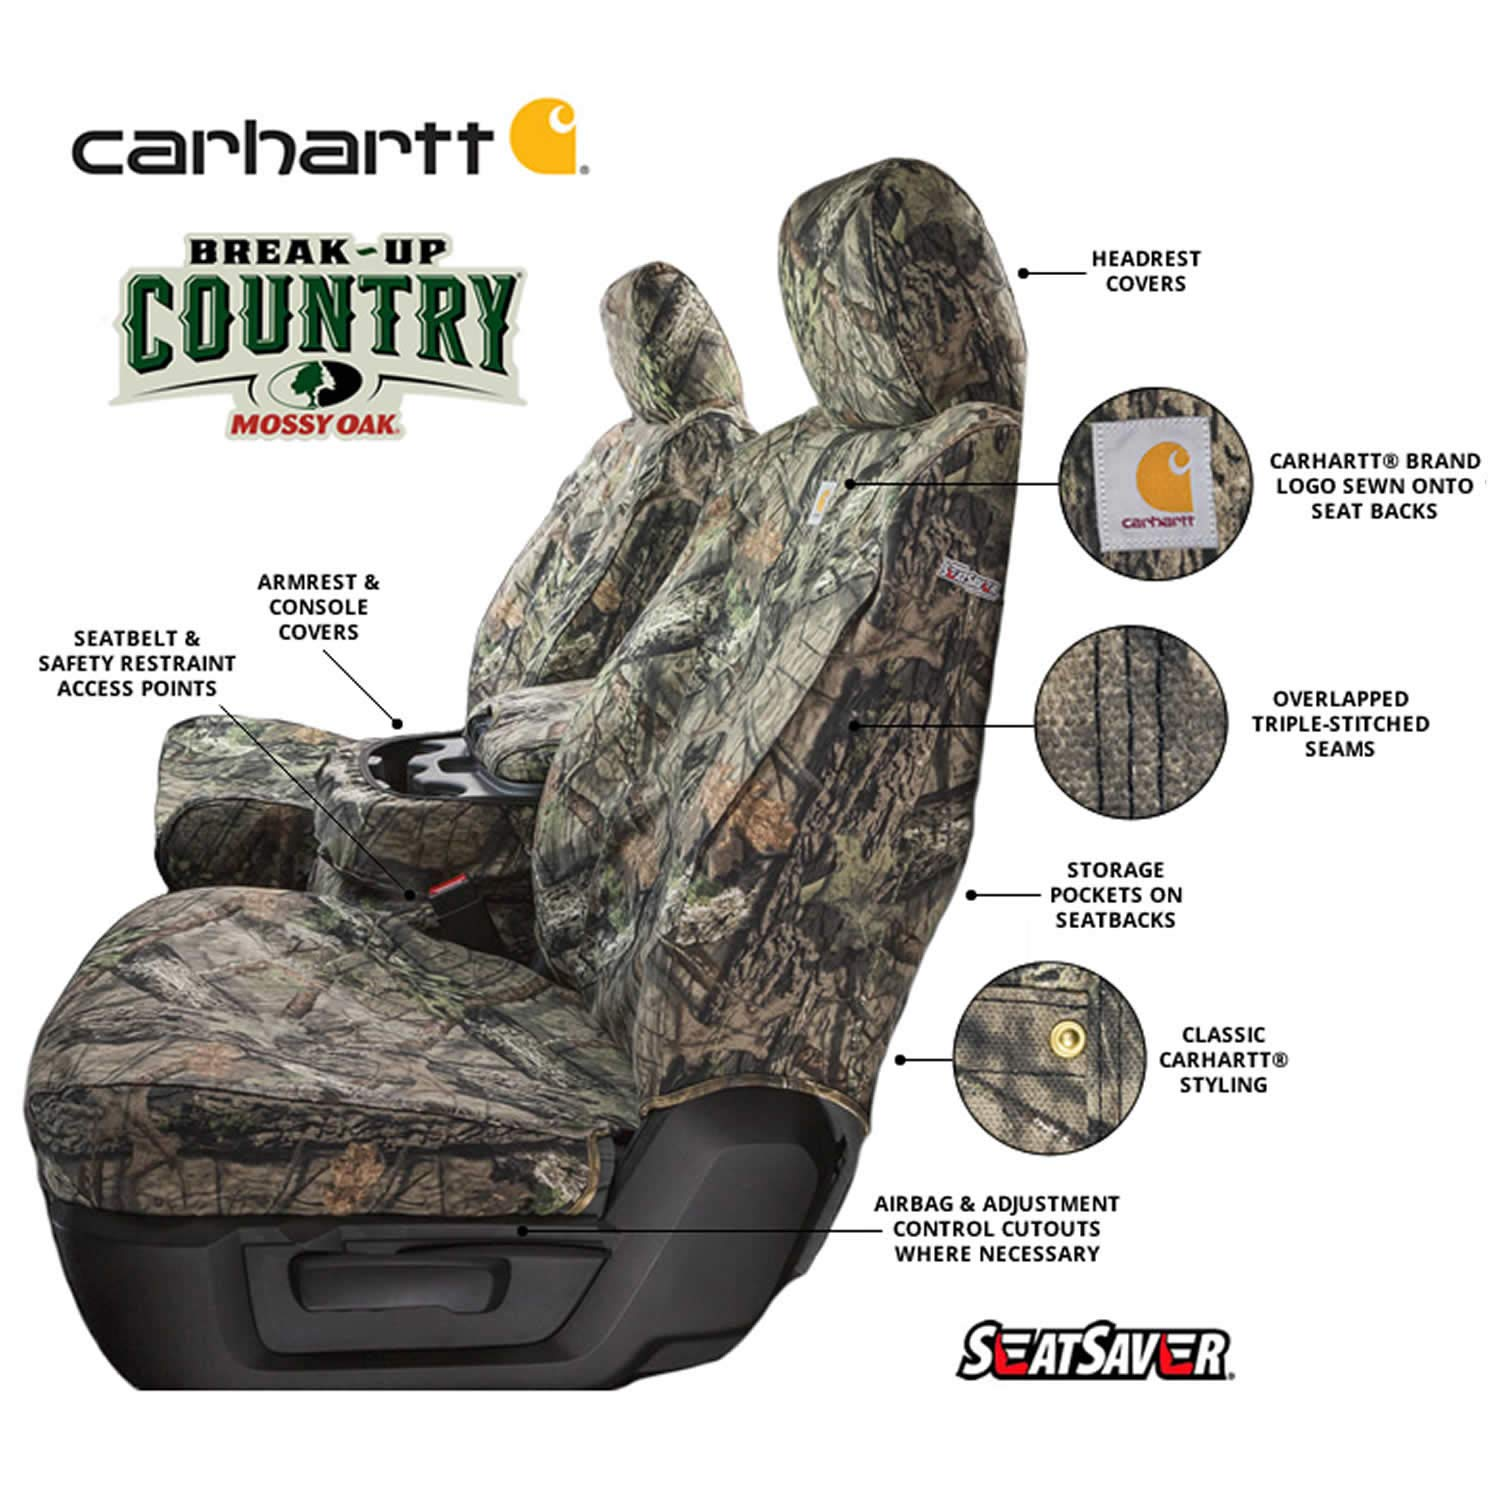 SSC2403CAMB Covercraft Carhartt Mossy Oak Camo SeatSaver Front Row Custom Fit Seat Cover for Select Toyota Tacoma Models Duck Weave Break-Up Country